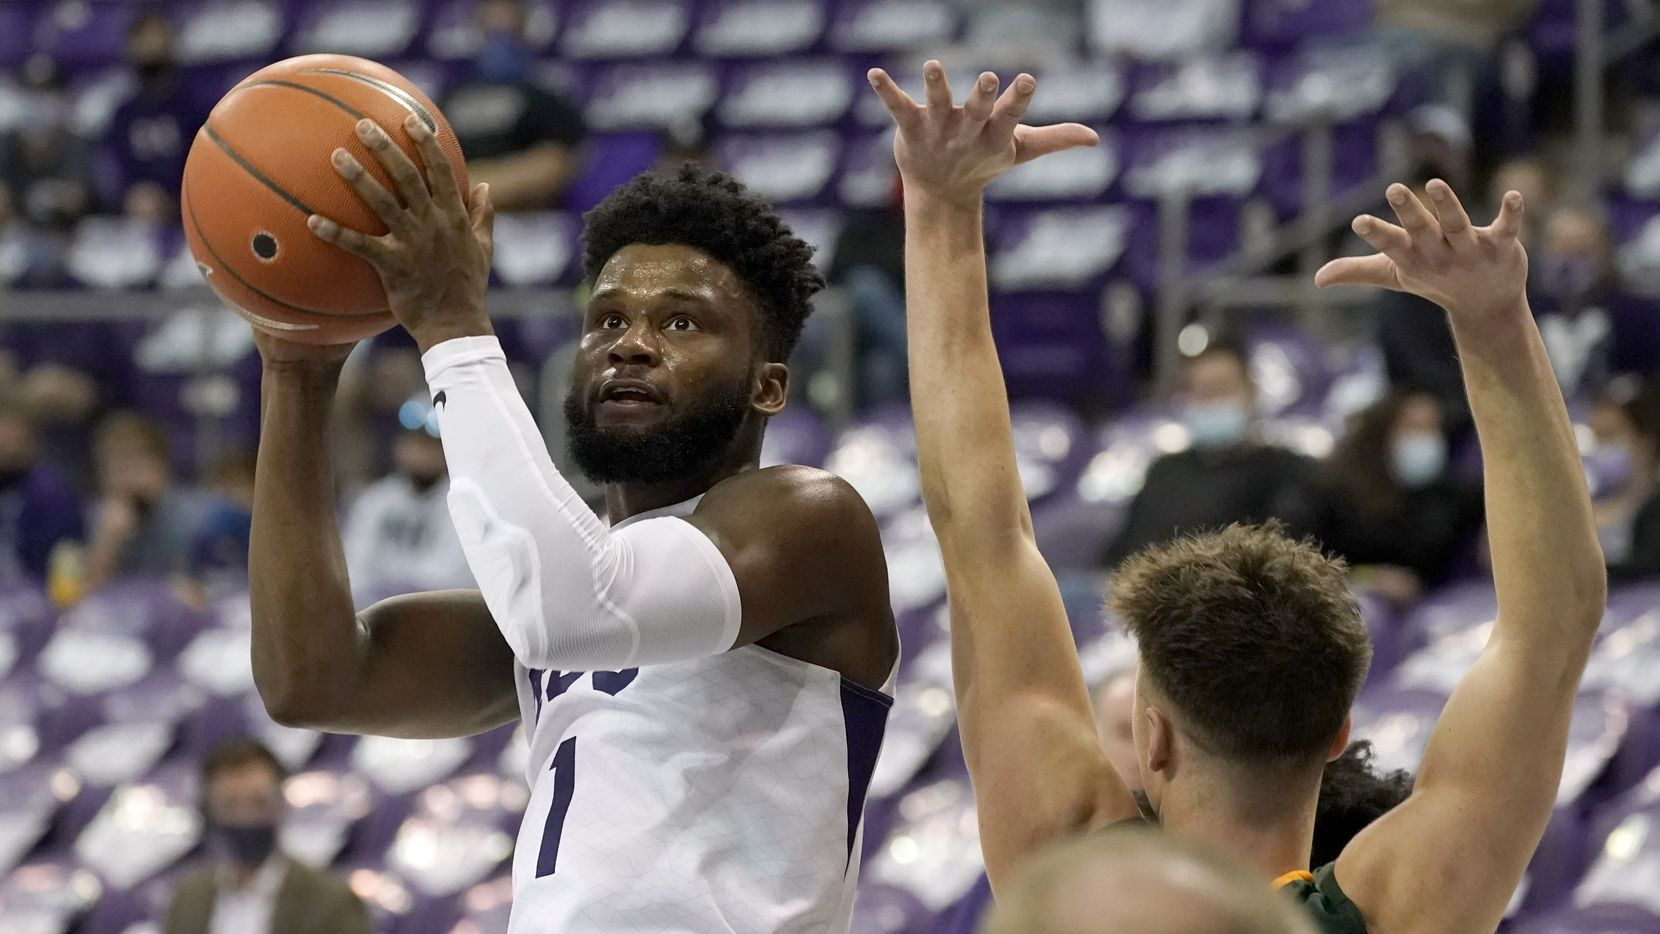 TCU guard Mike Miles (1) looks to the basket as North Dakota State guard Boden Skunberg defends during the second half of an NCAA college basketball game in Fort Worth, Texas, Tuesday, Dec. 22, 2020.